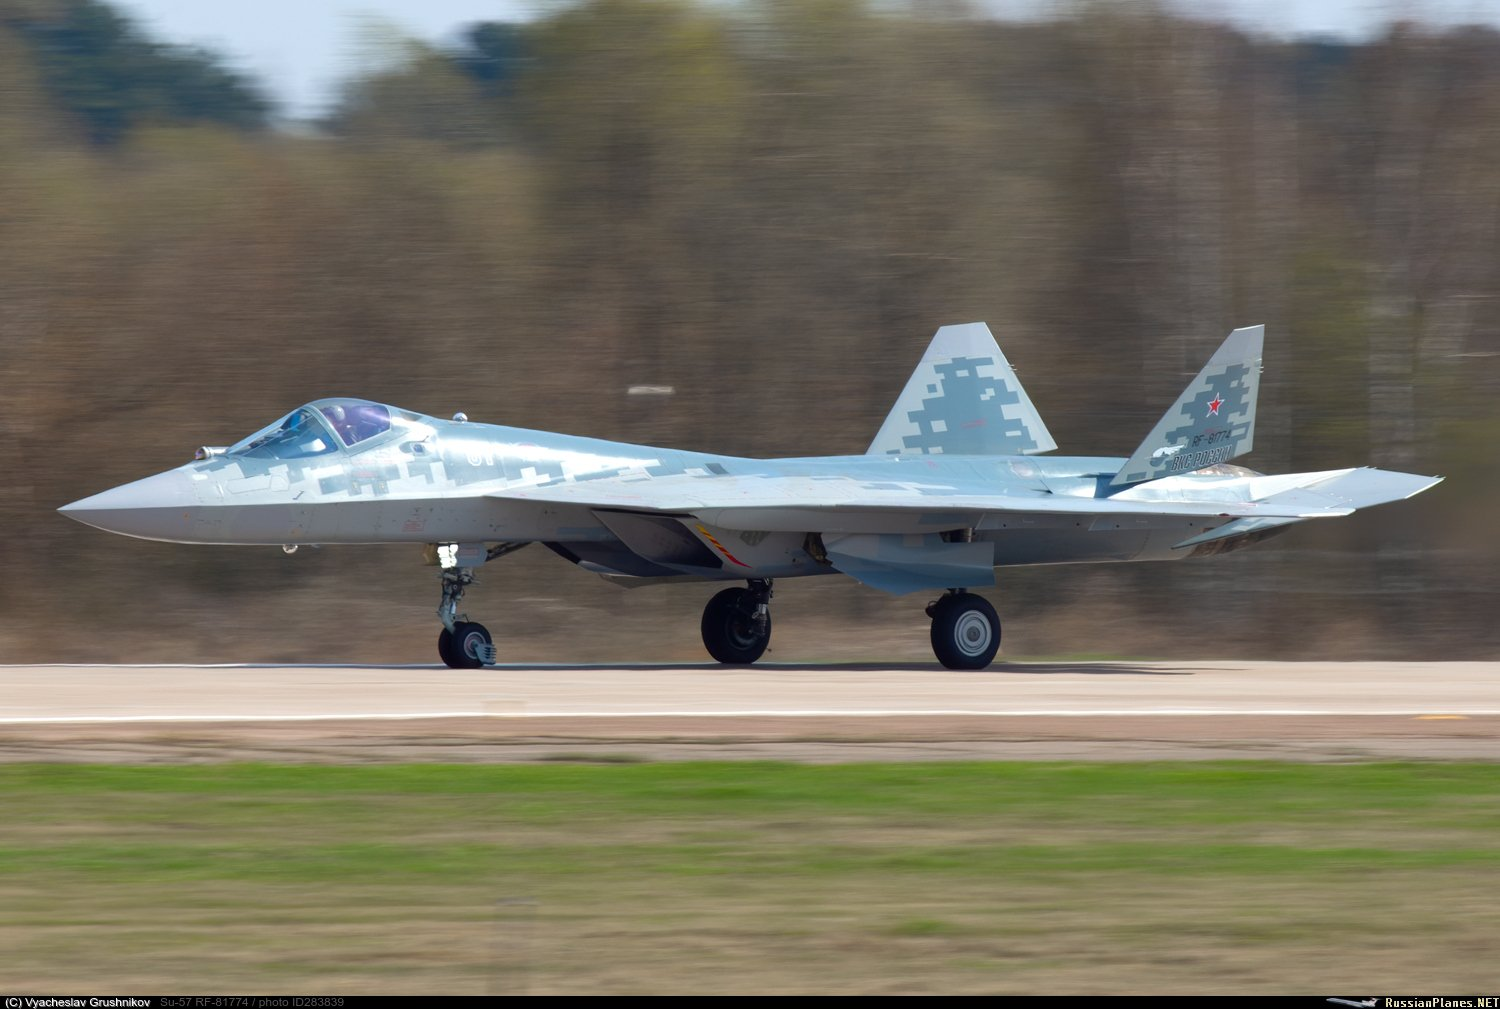 Su-57 Stealth Fighter: News #7 - Page 20 Ezr0Jy0XsAI6ATC?format=jpg&name=large